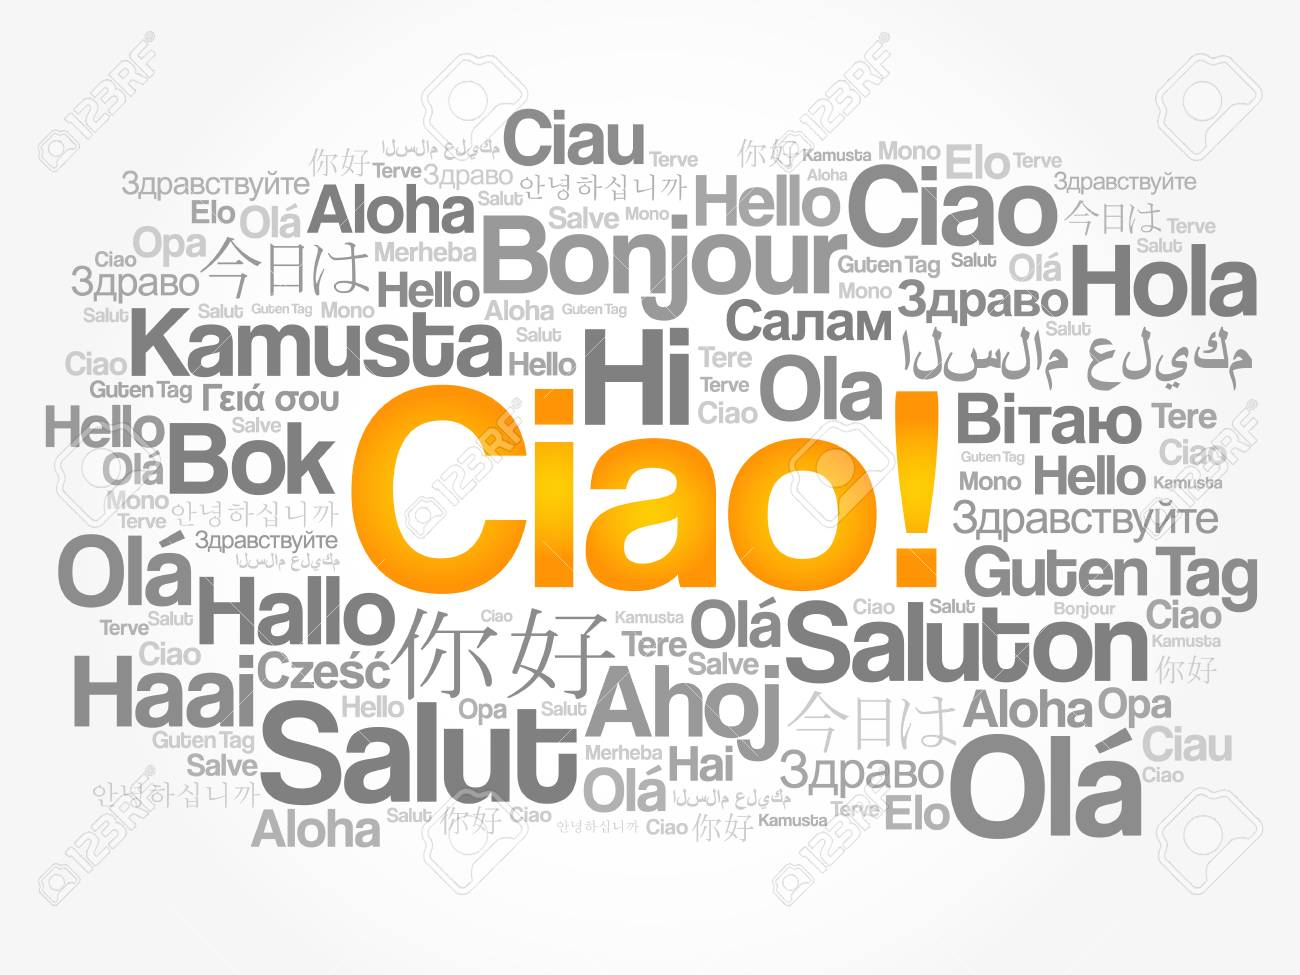 Ciao Hello Greeting In Italian Word Cloud In Different Languages